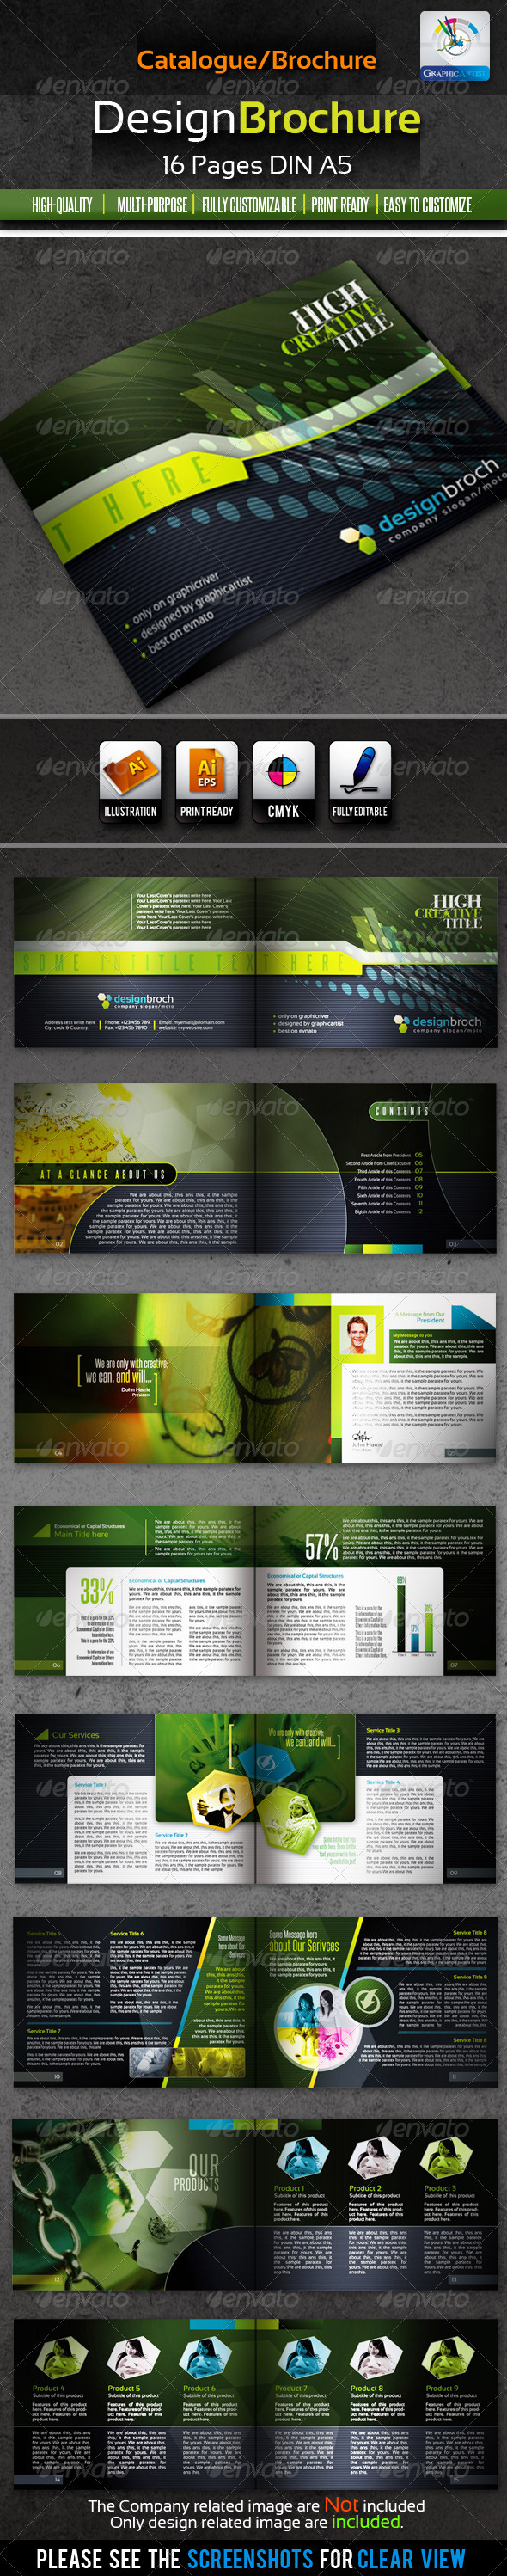 GraphicRiver DesignBrochure 16pages Corporate Catalog Brochure 1540484